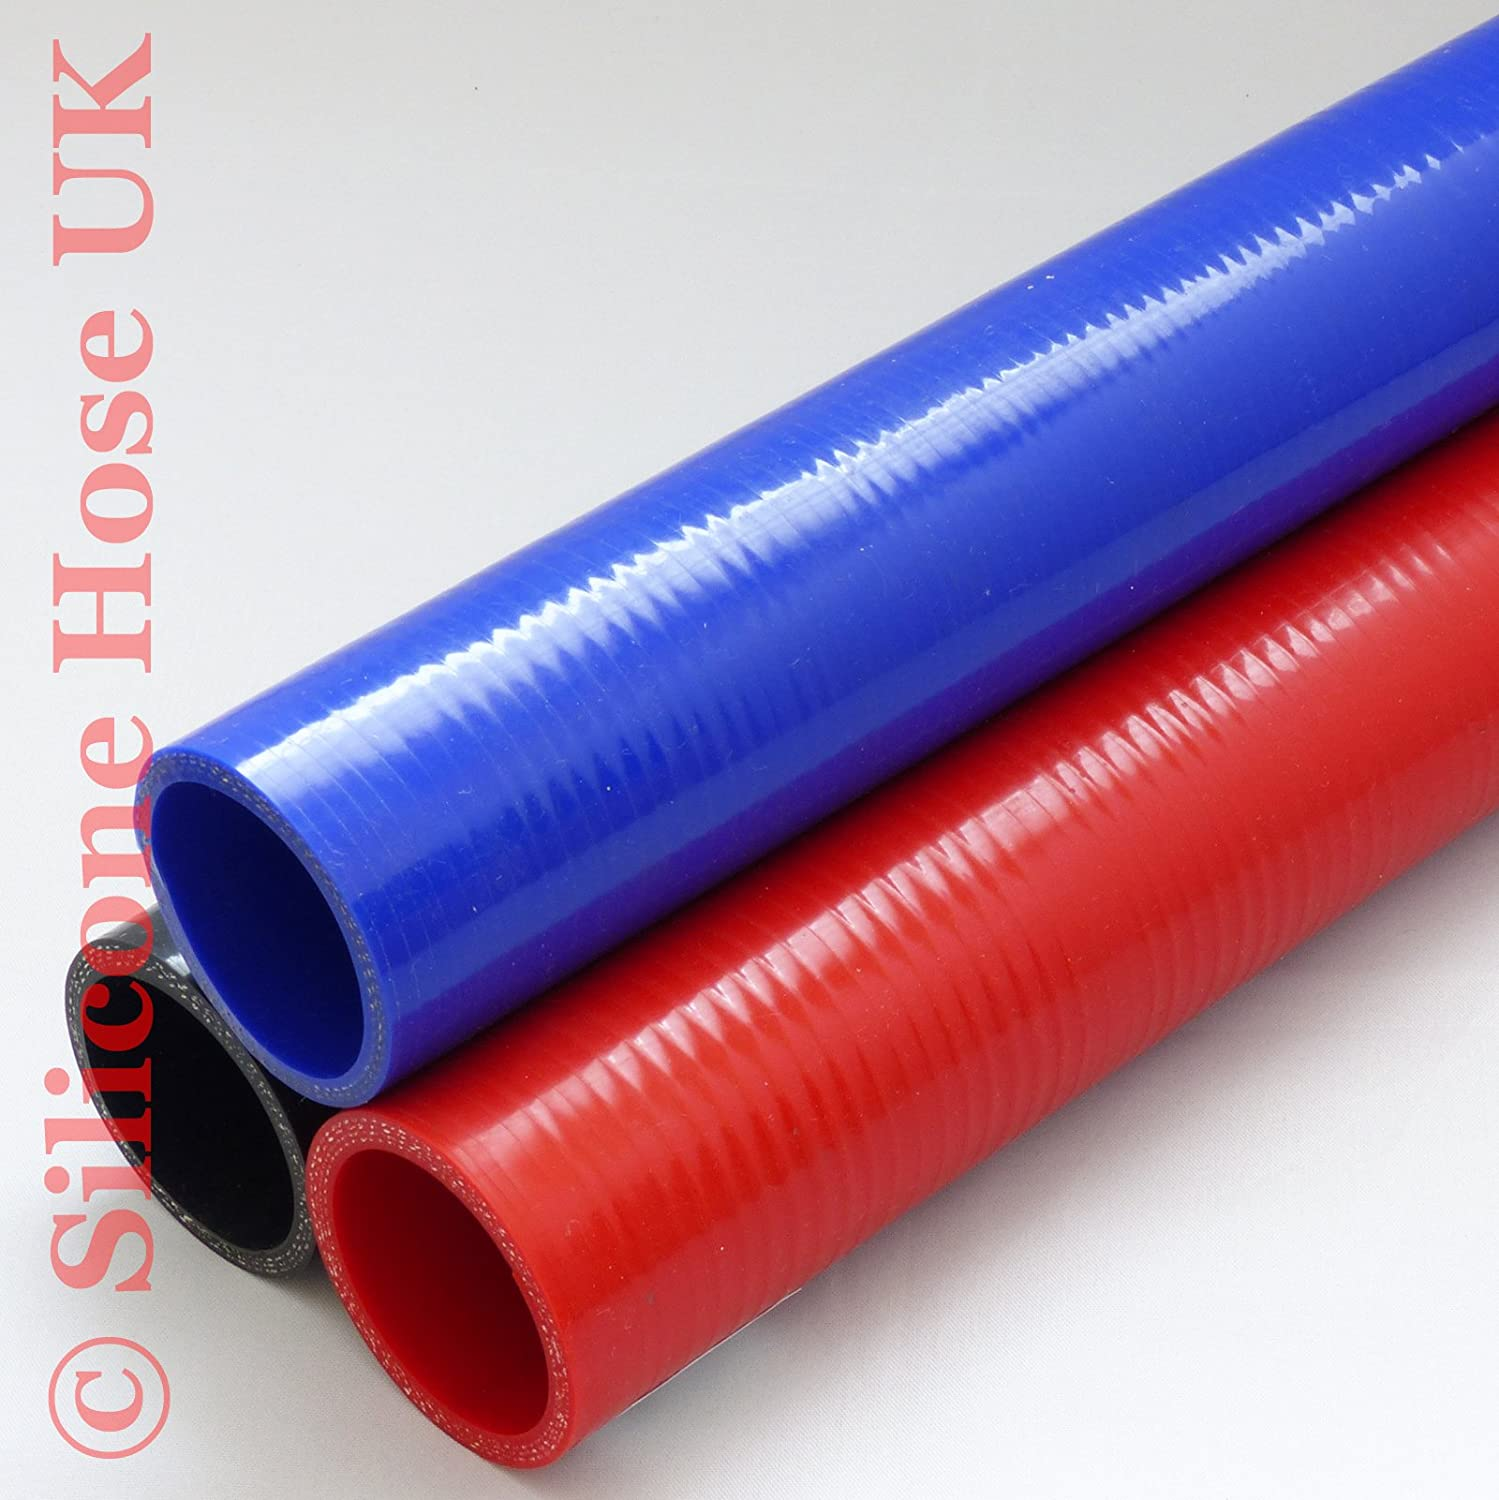 60mm Straight Reinforced Silicone Heater Coolant or Turbo Inlet Hose 500mm piece ID Blue